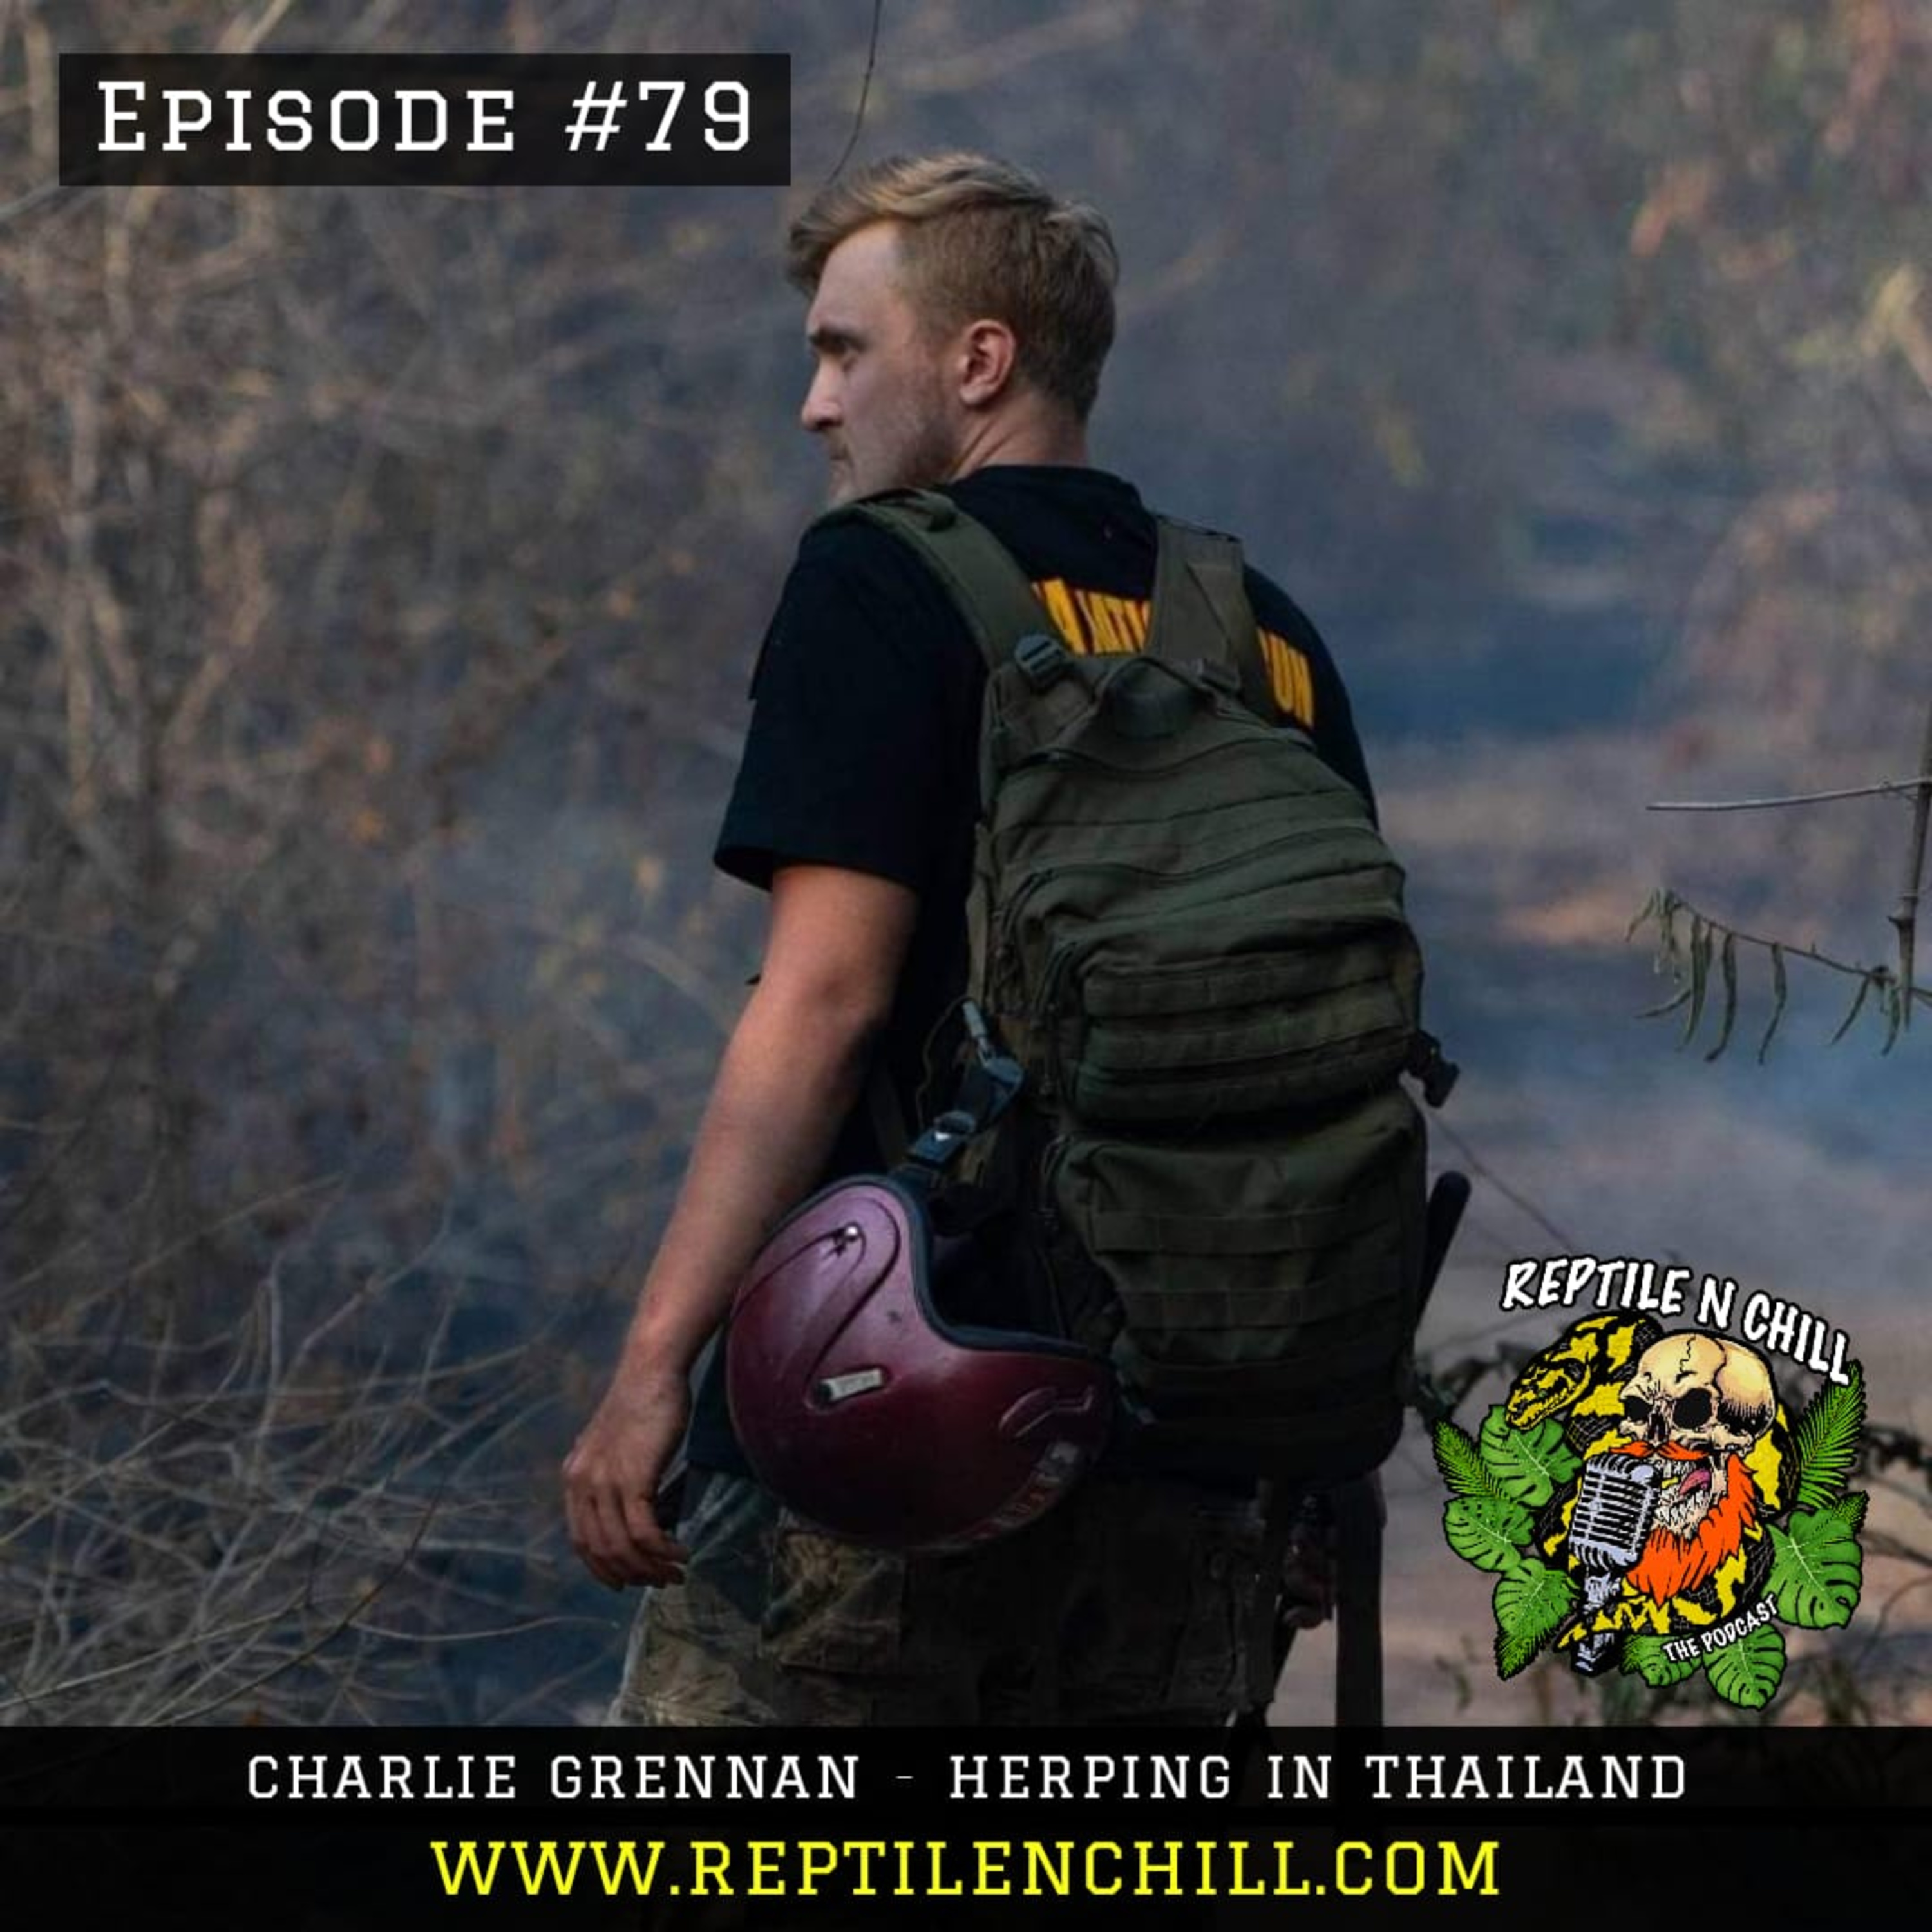 Cobra-tracking in Thailand with Charlie Grennan - 79 Reptile n Chill